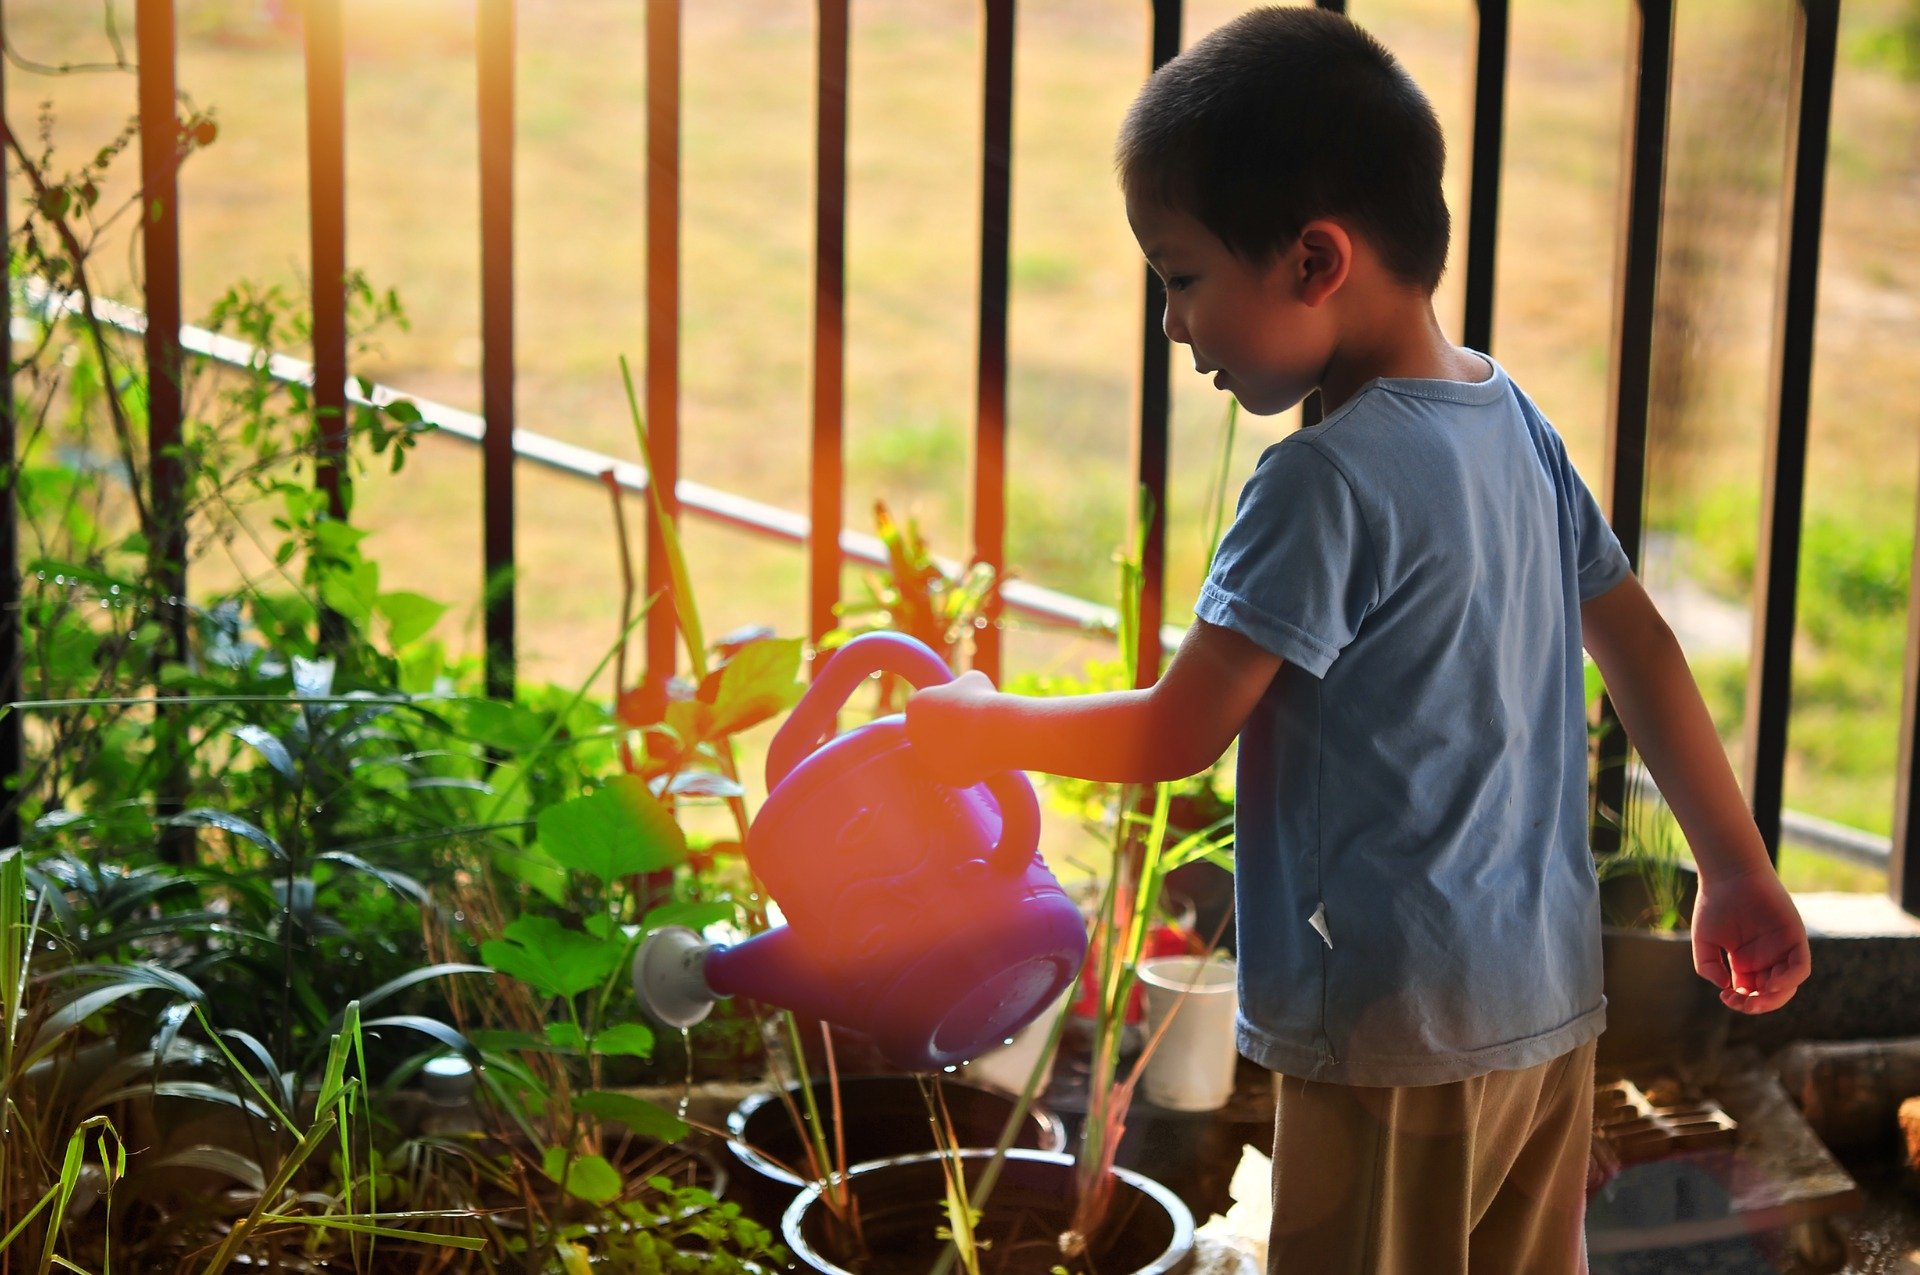 child with a watering can